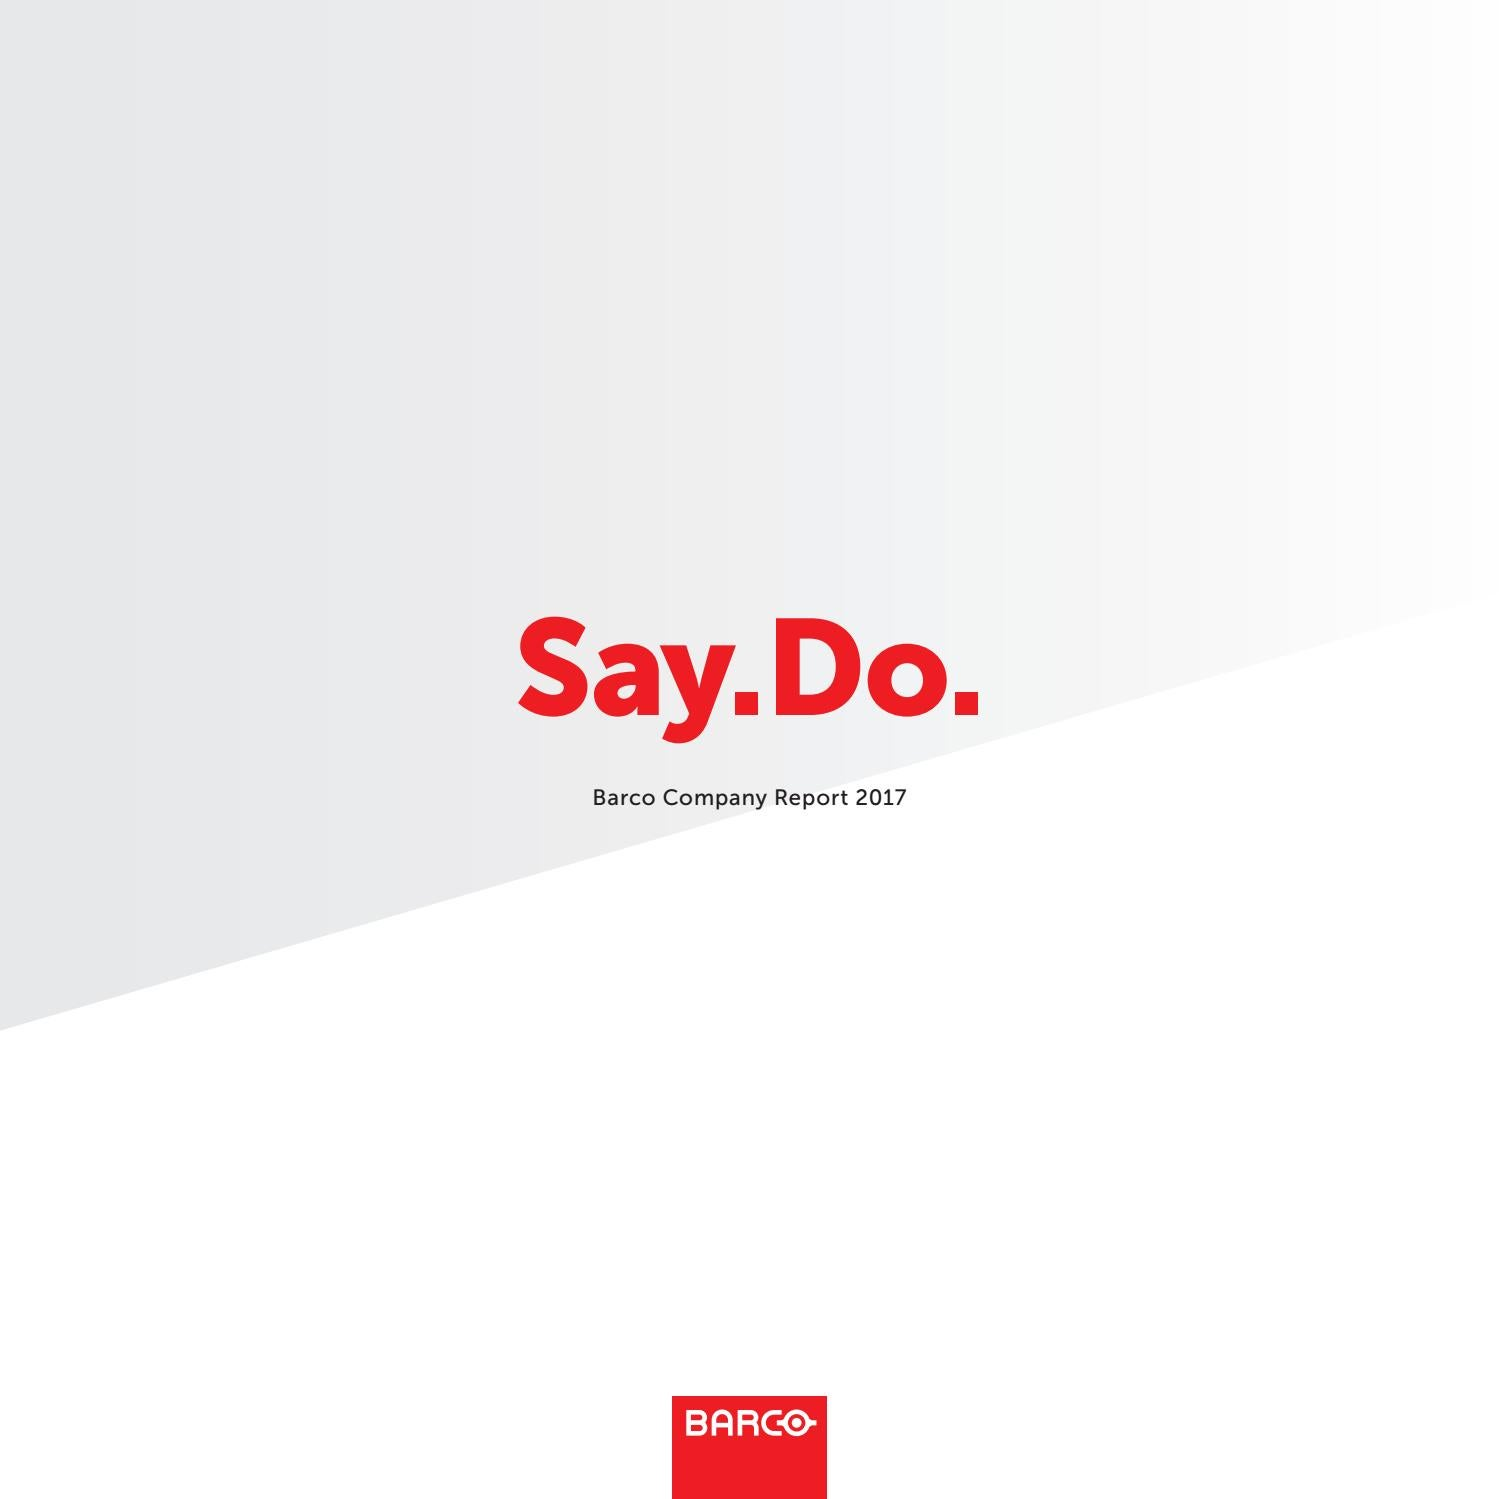 c9dc4c32ffe Barco annual report 2017 by Barco - issuu